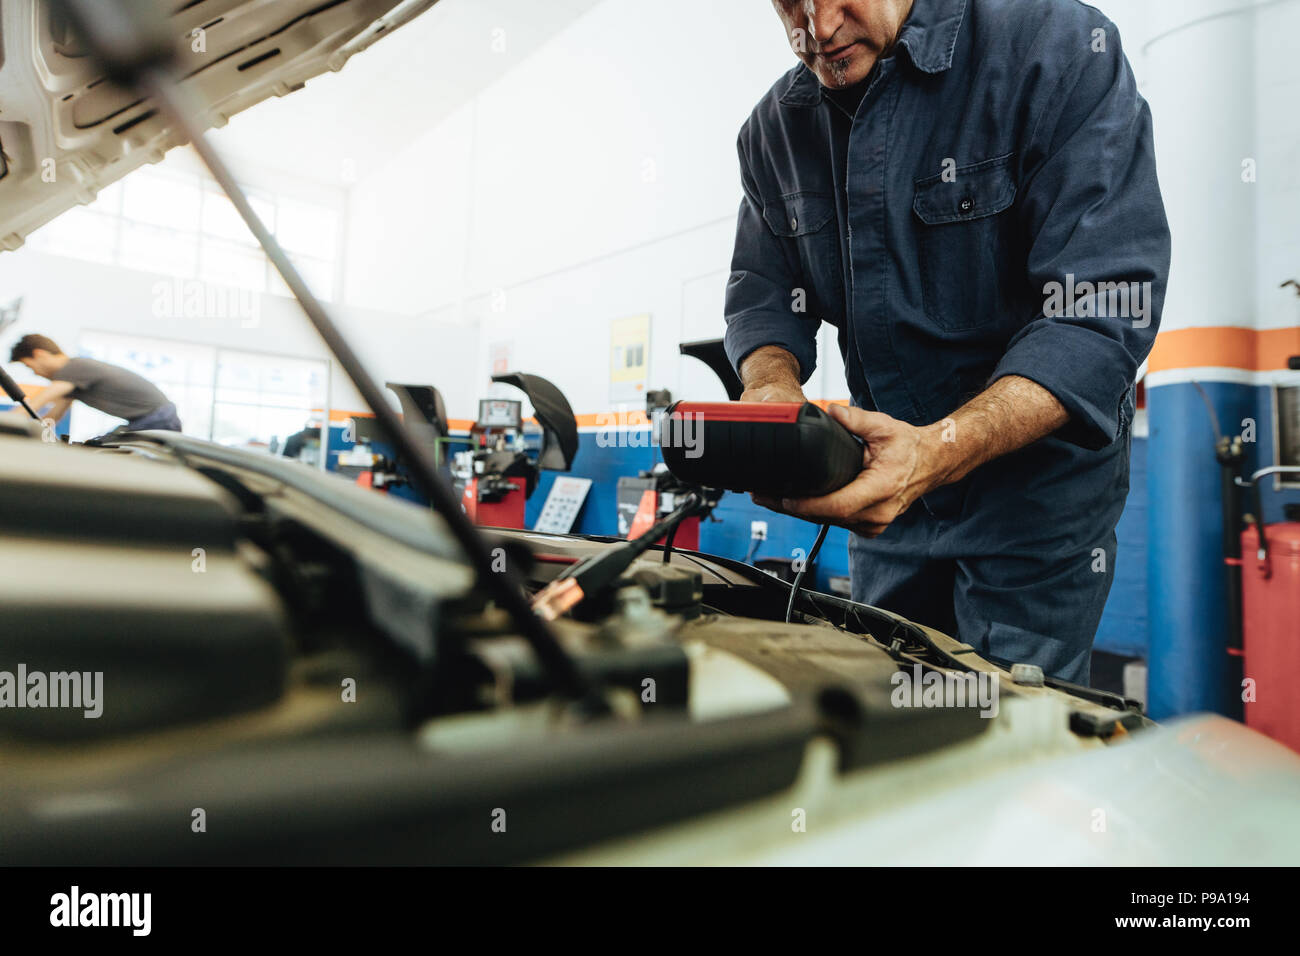 Technician using electronic diagnostic equipment to check the car engine. Mechanics using a device to check the engine. - Stock Image